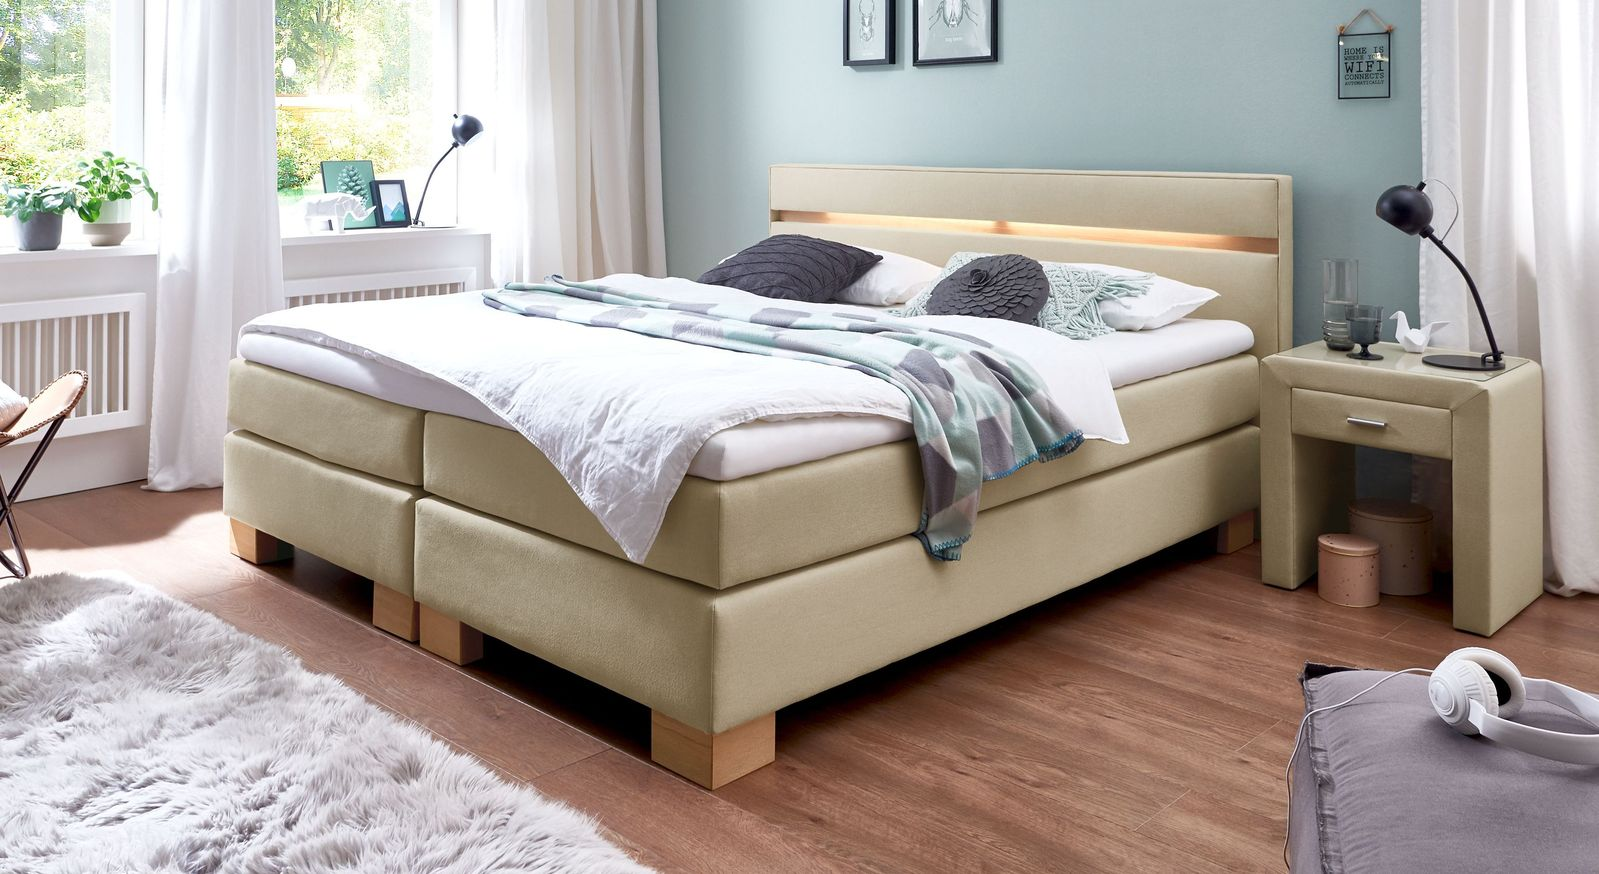 53 cm hohes Boxspringbett Vincenzo aus Webstoff in Natur